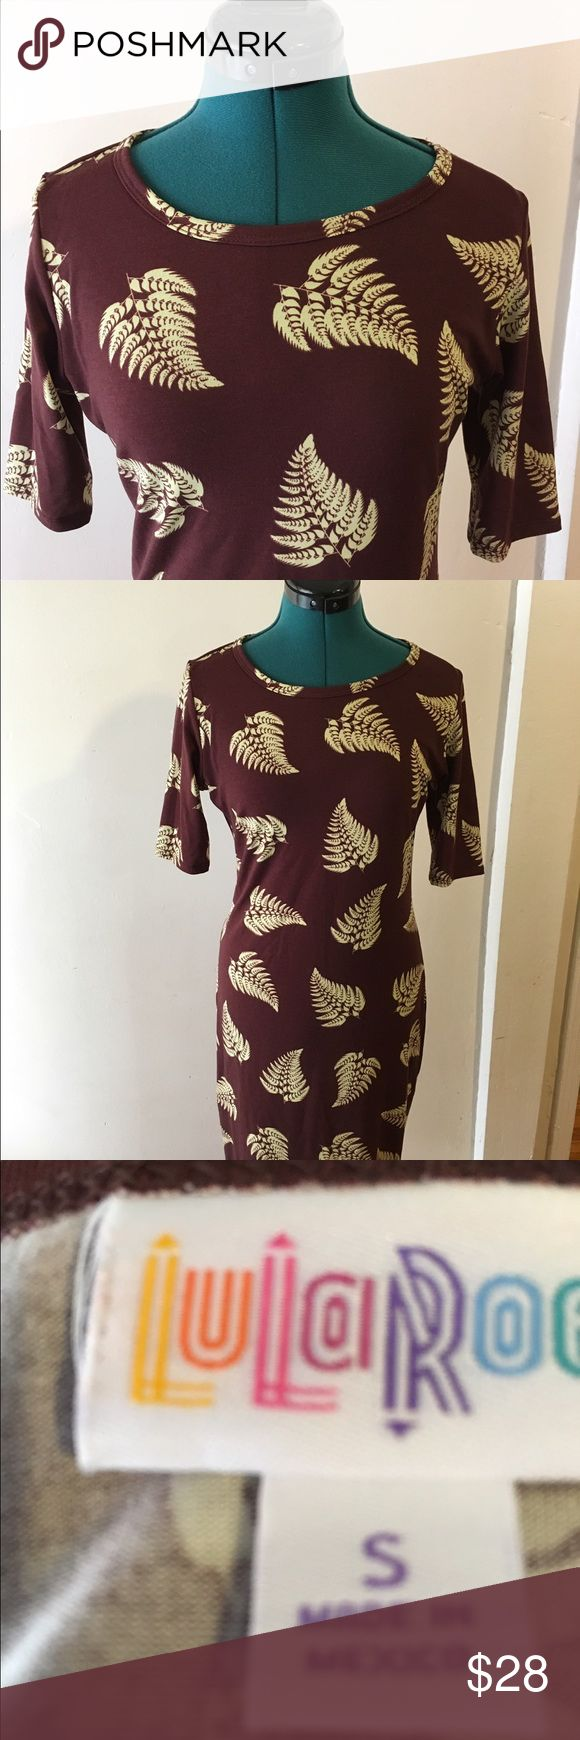 Lularoe Julia brown with leaves EUC Super cute brown Julia has light Tan fern leaves. Stretchy material brings out your green thumb! Cute with sandals or boots in the fall. LuLaRoe Dresses